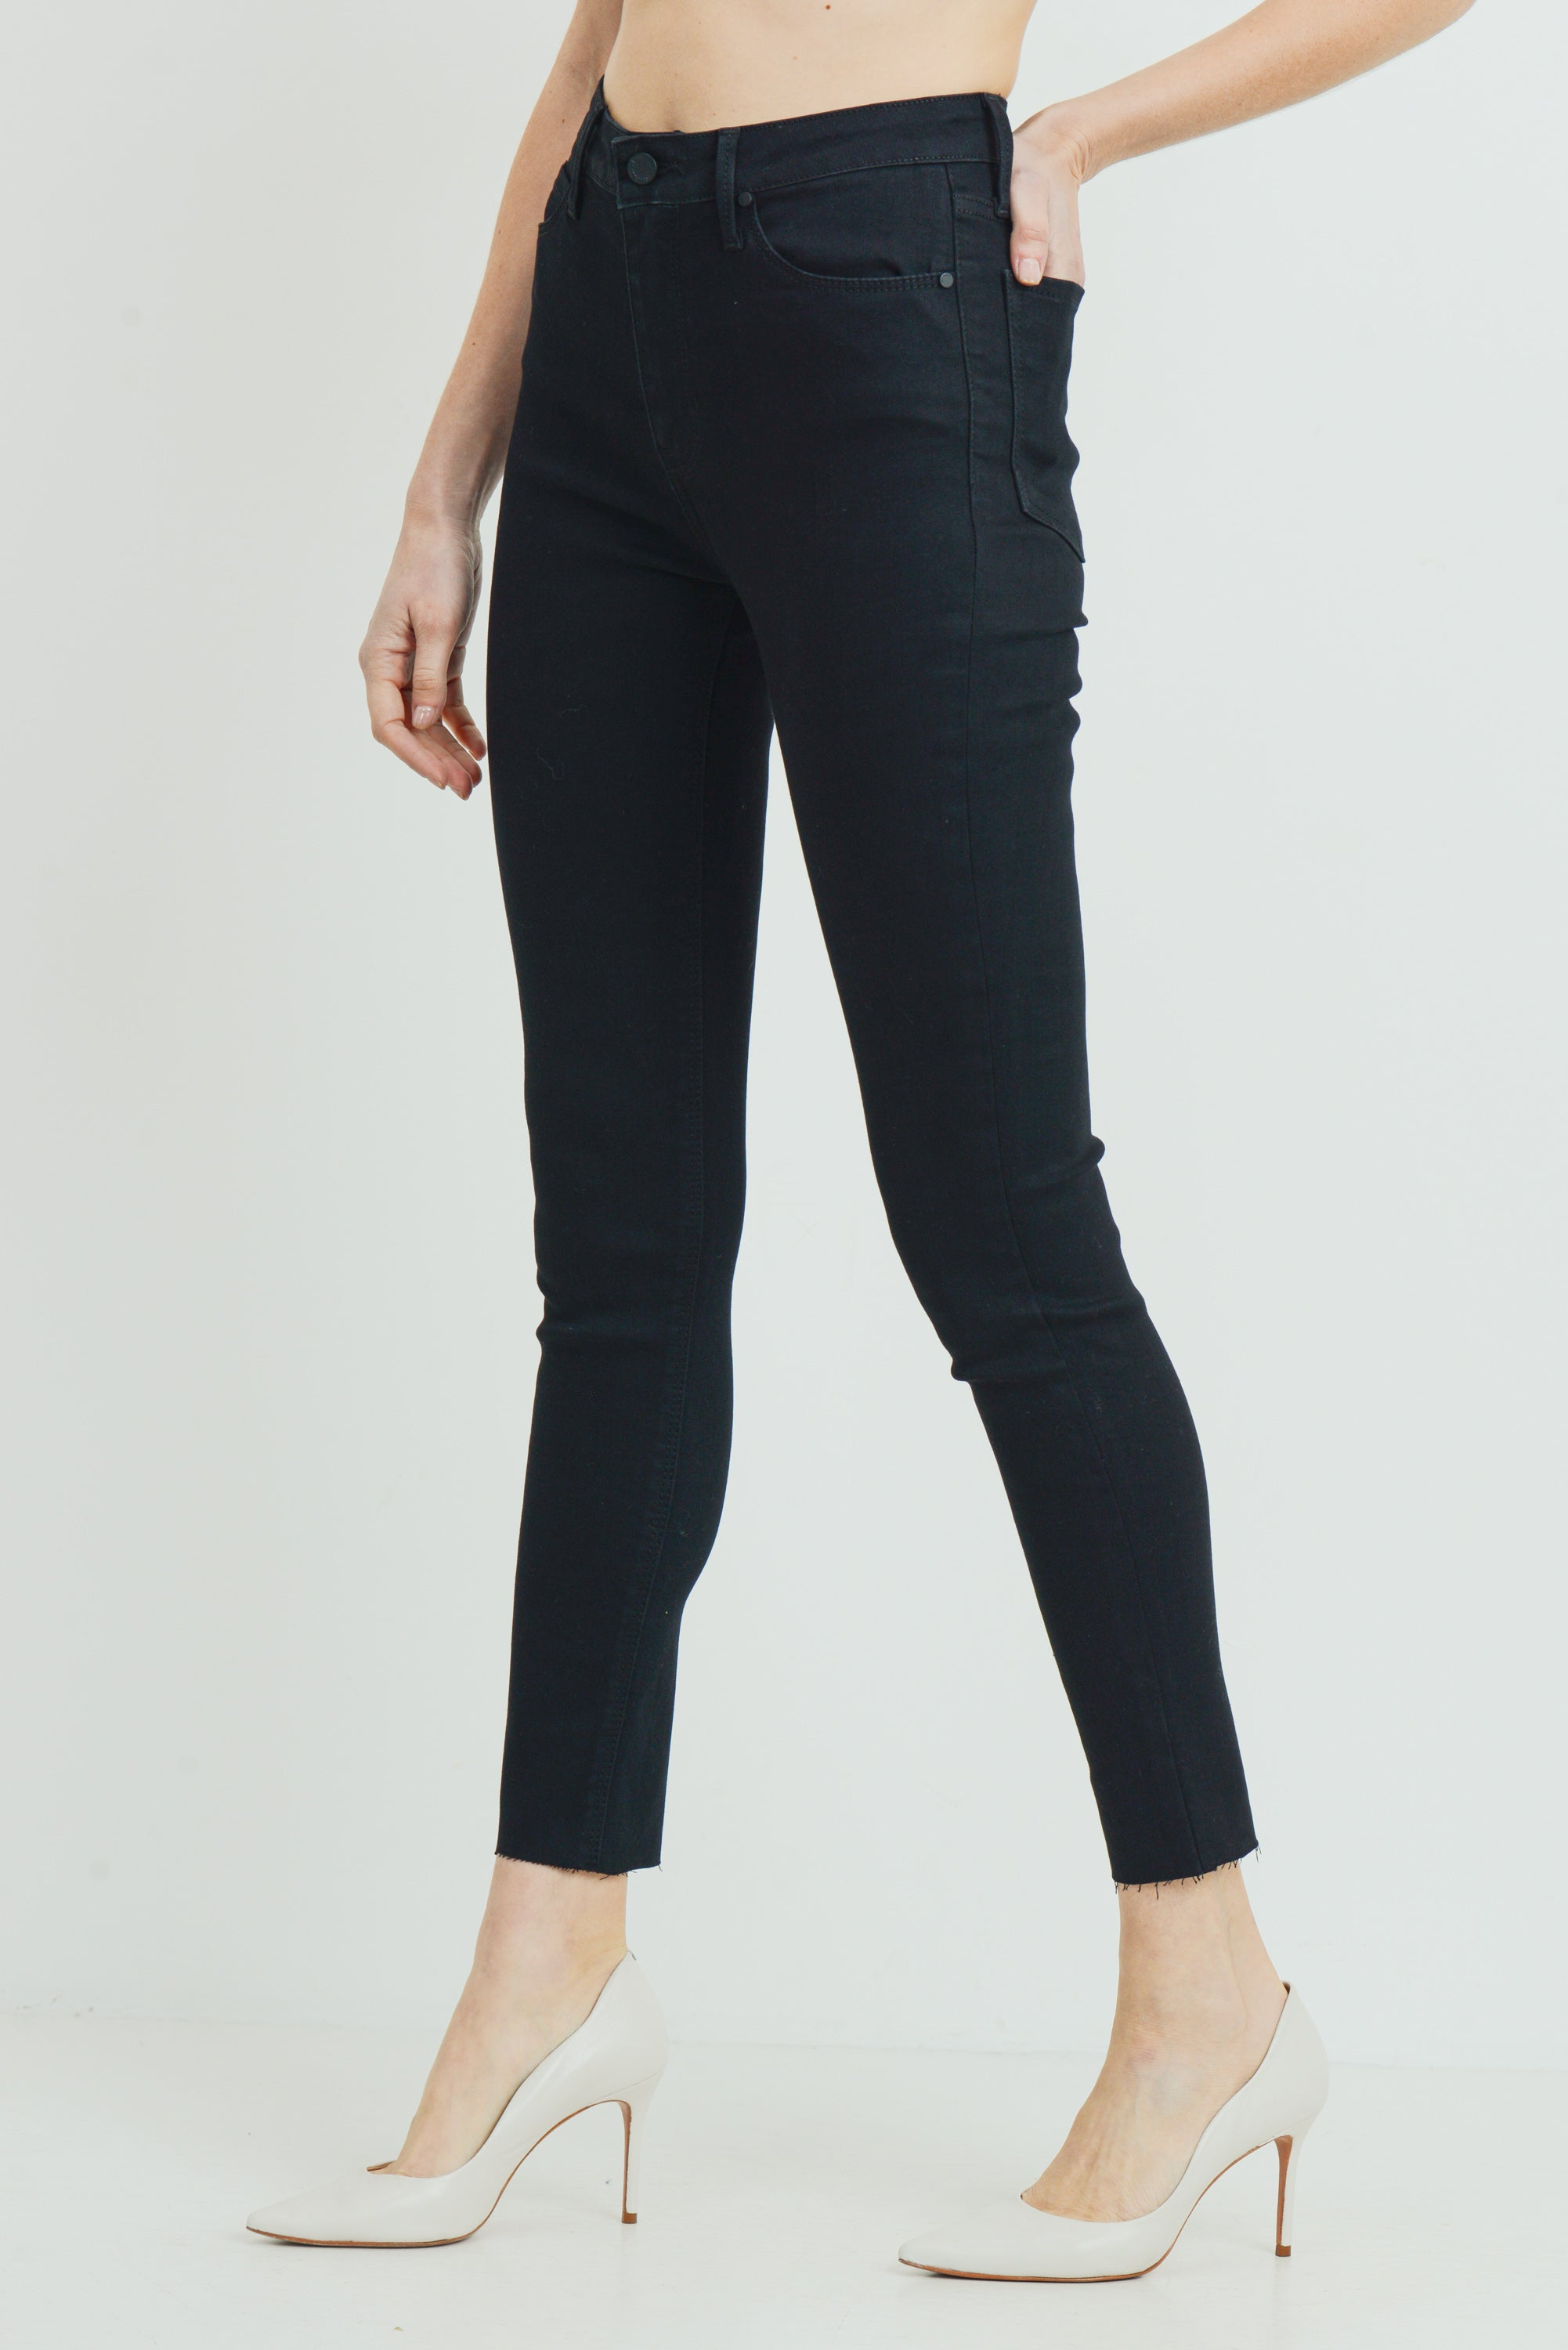 High Rise Scissor Cut Skinny, Black